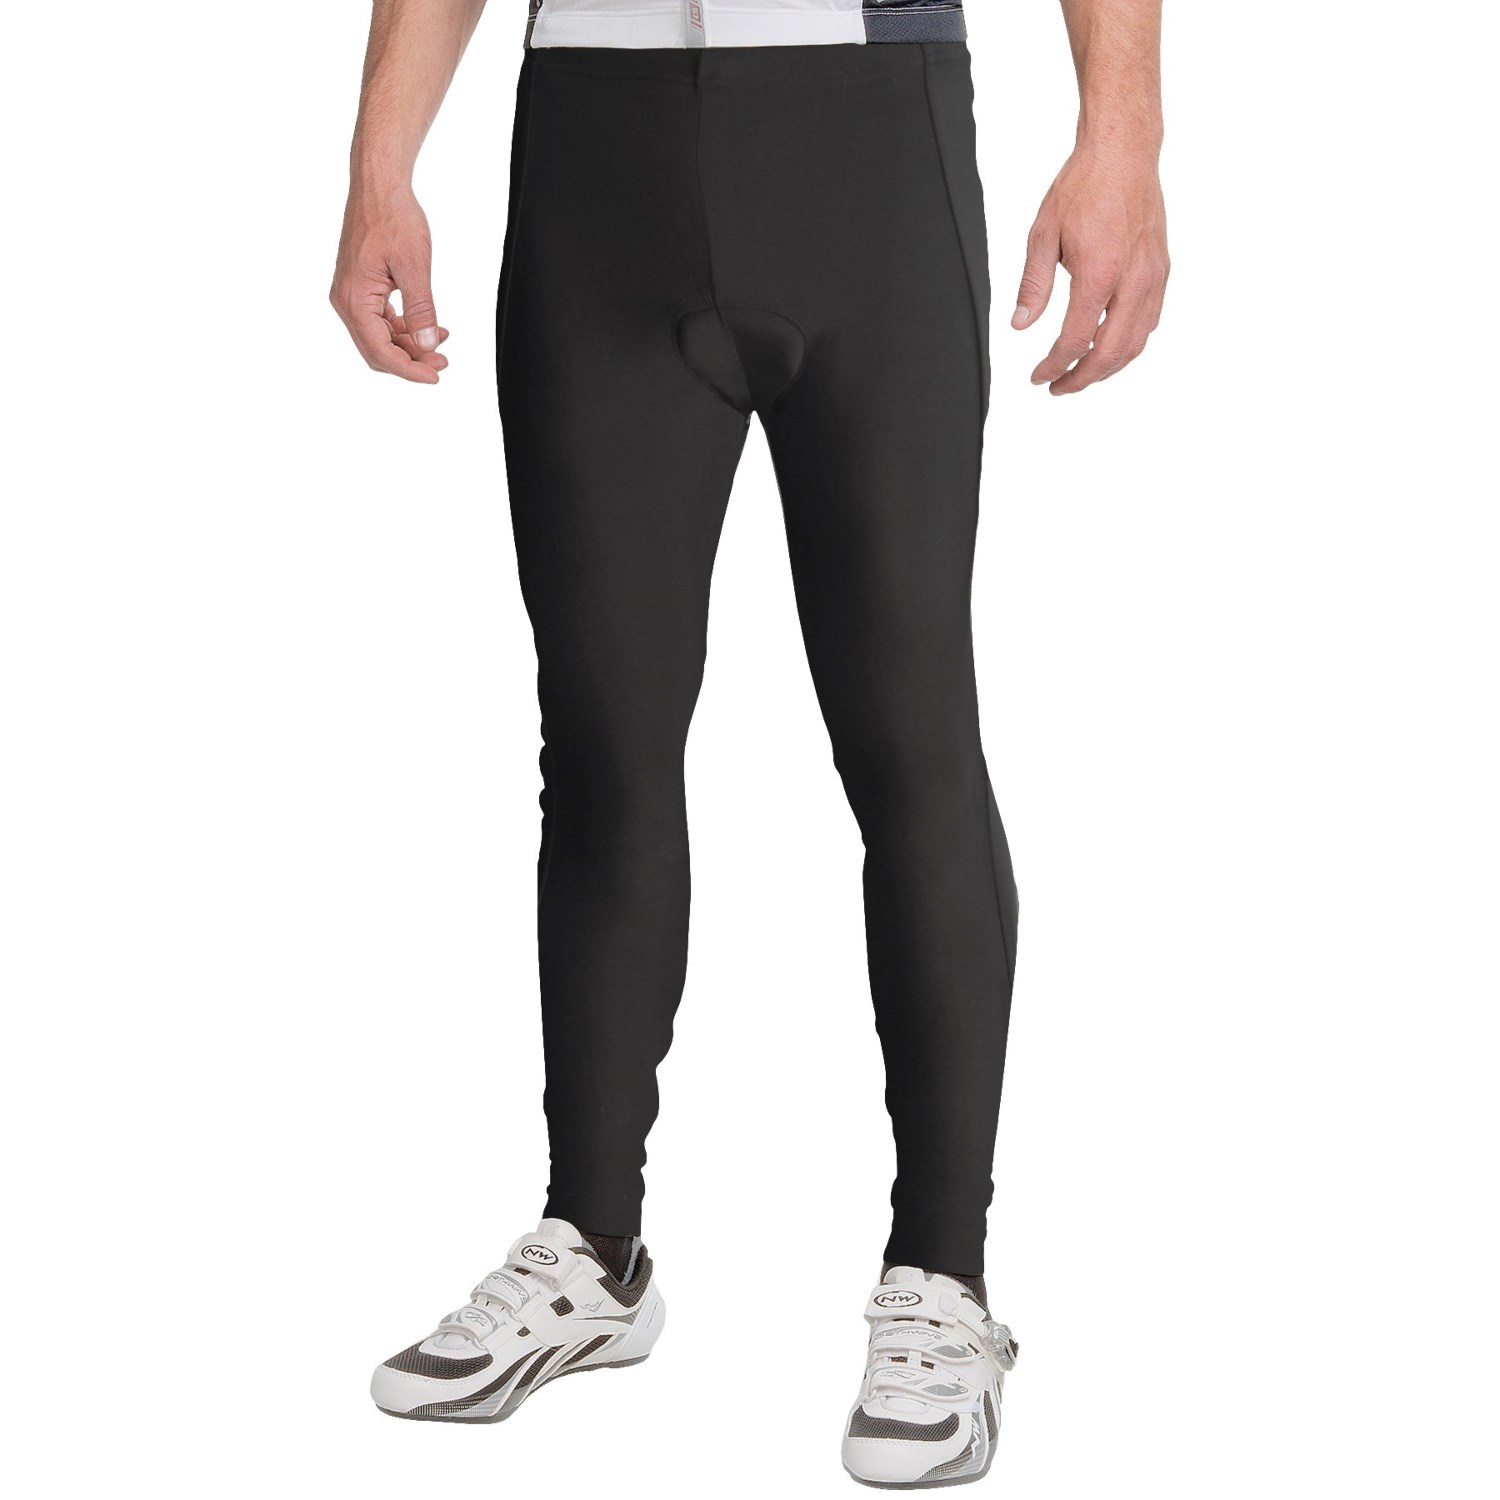 Tights For Men 11